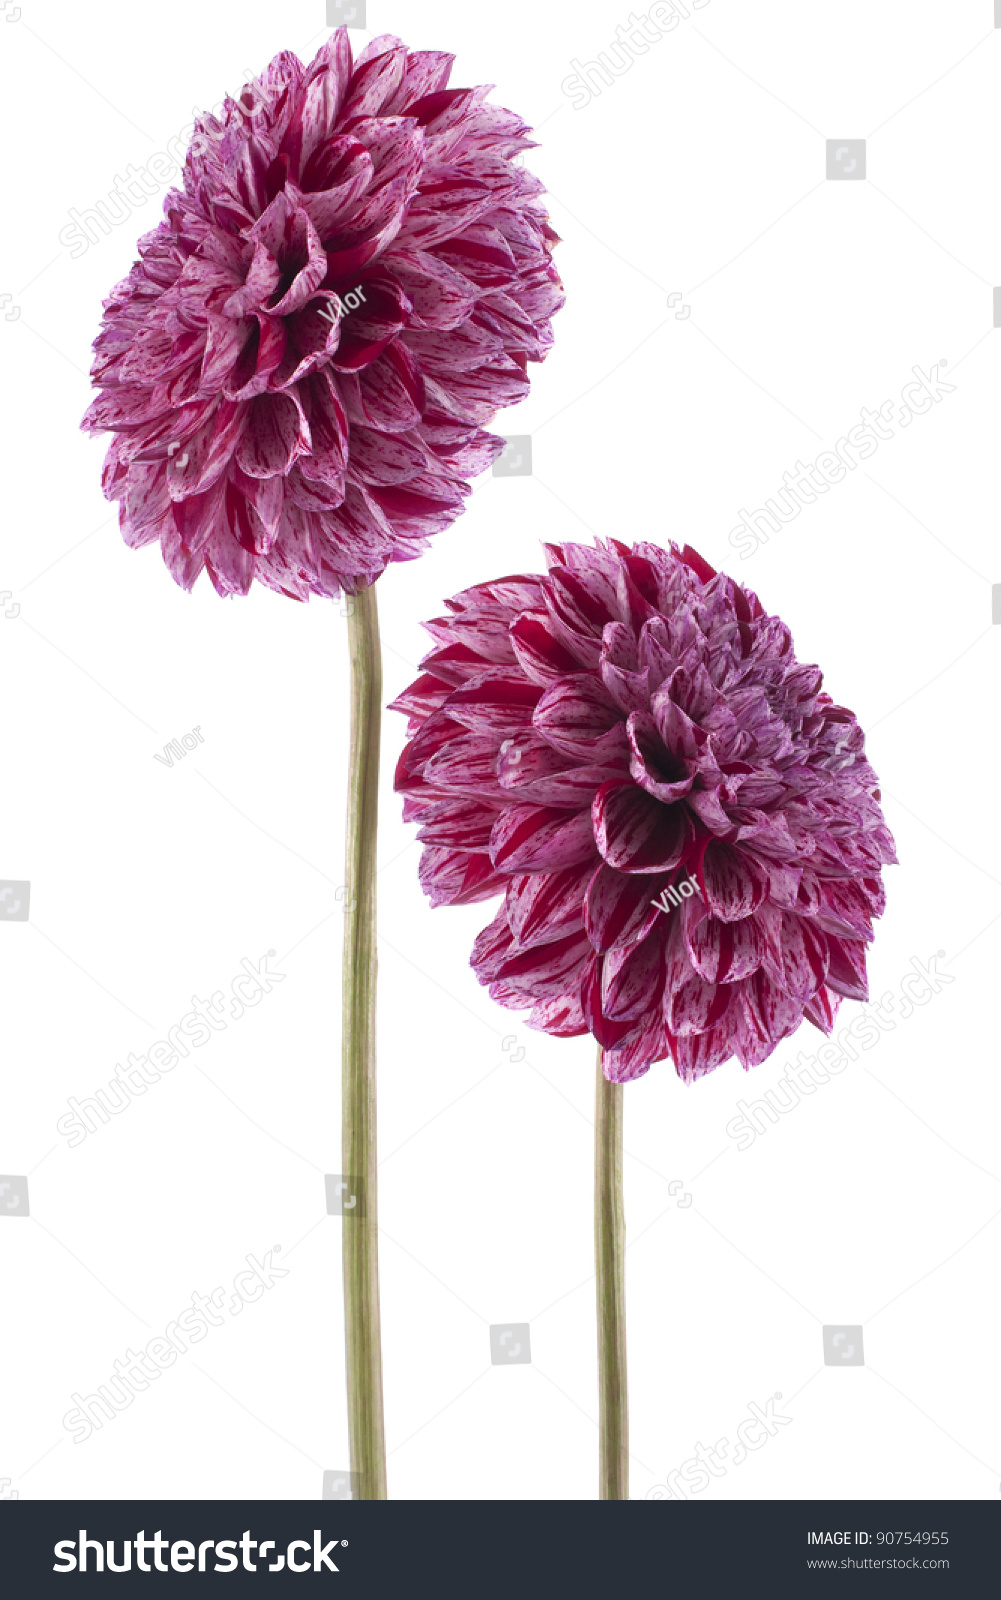 Studio Shot Of Red-Violet Colored Dahlia Flowers Isolated ...